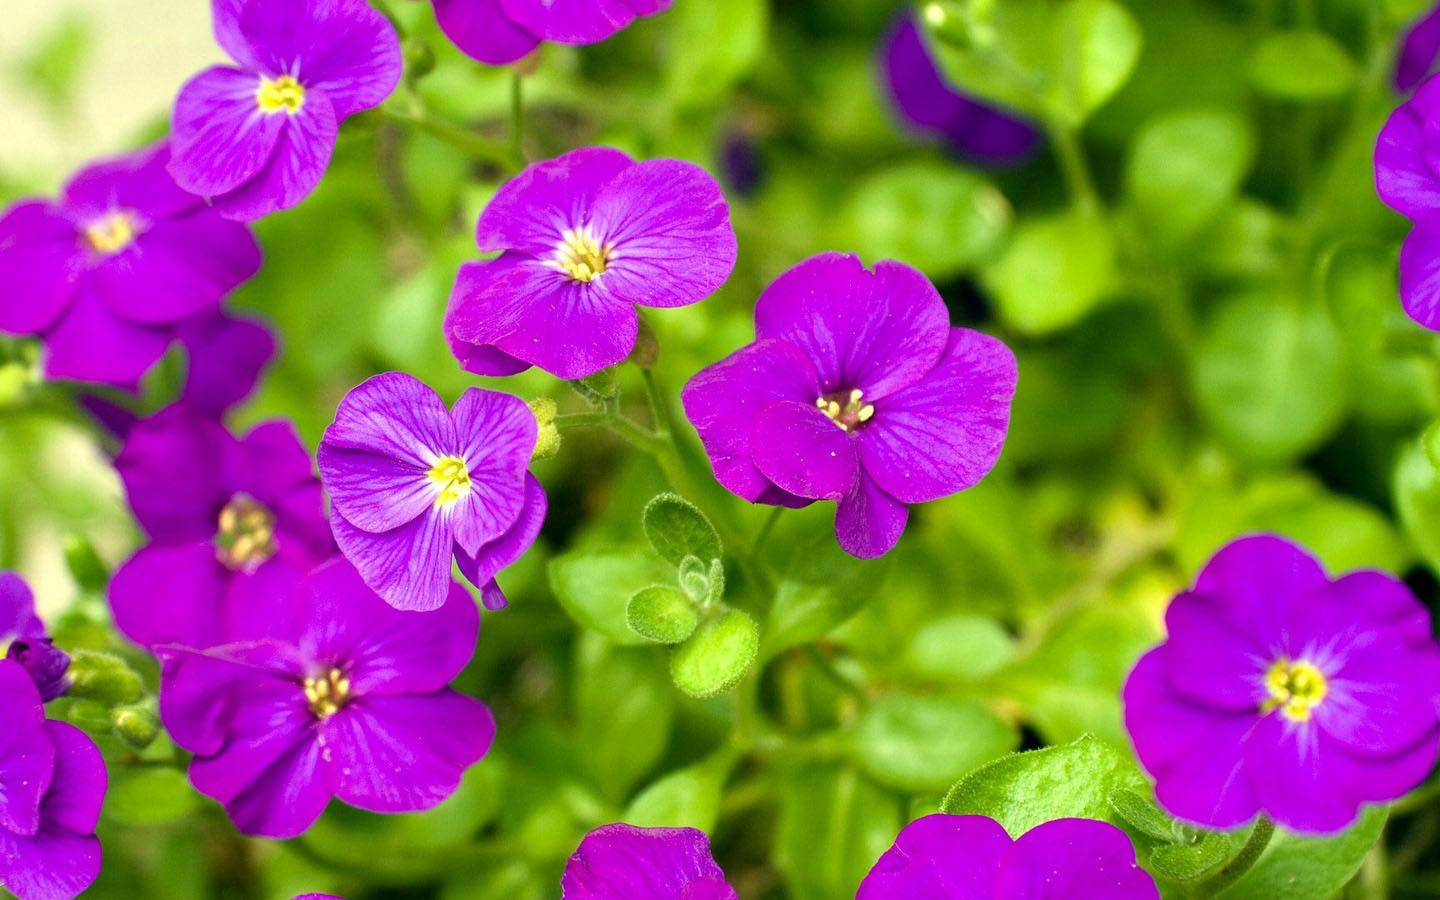 Purple Flower Wallpaper - Android Apps on Google Play